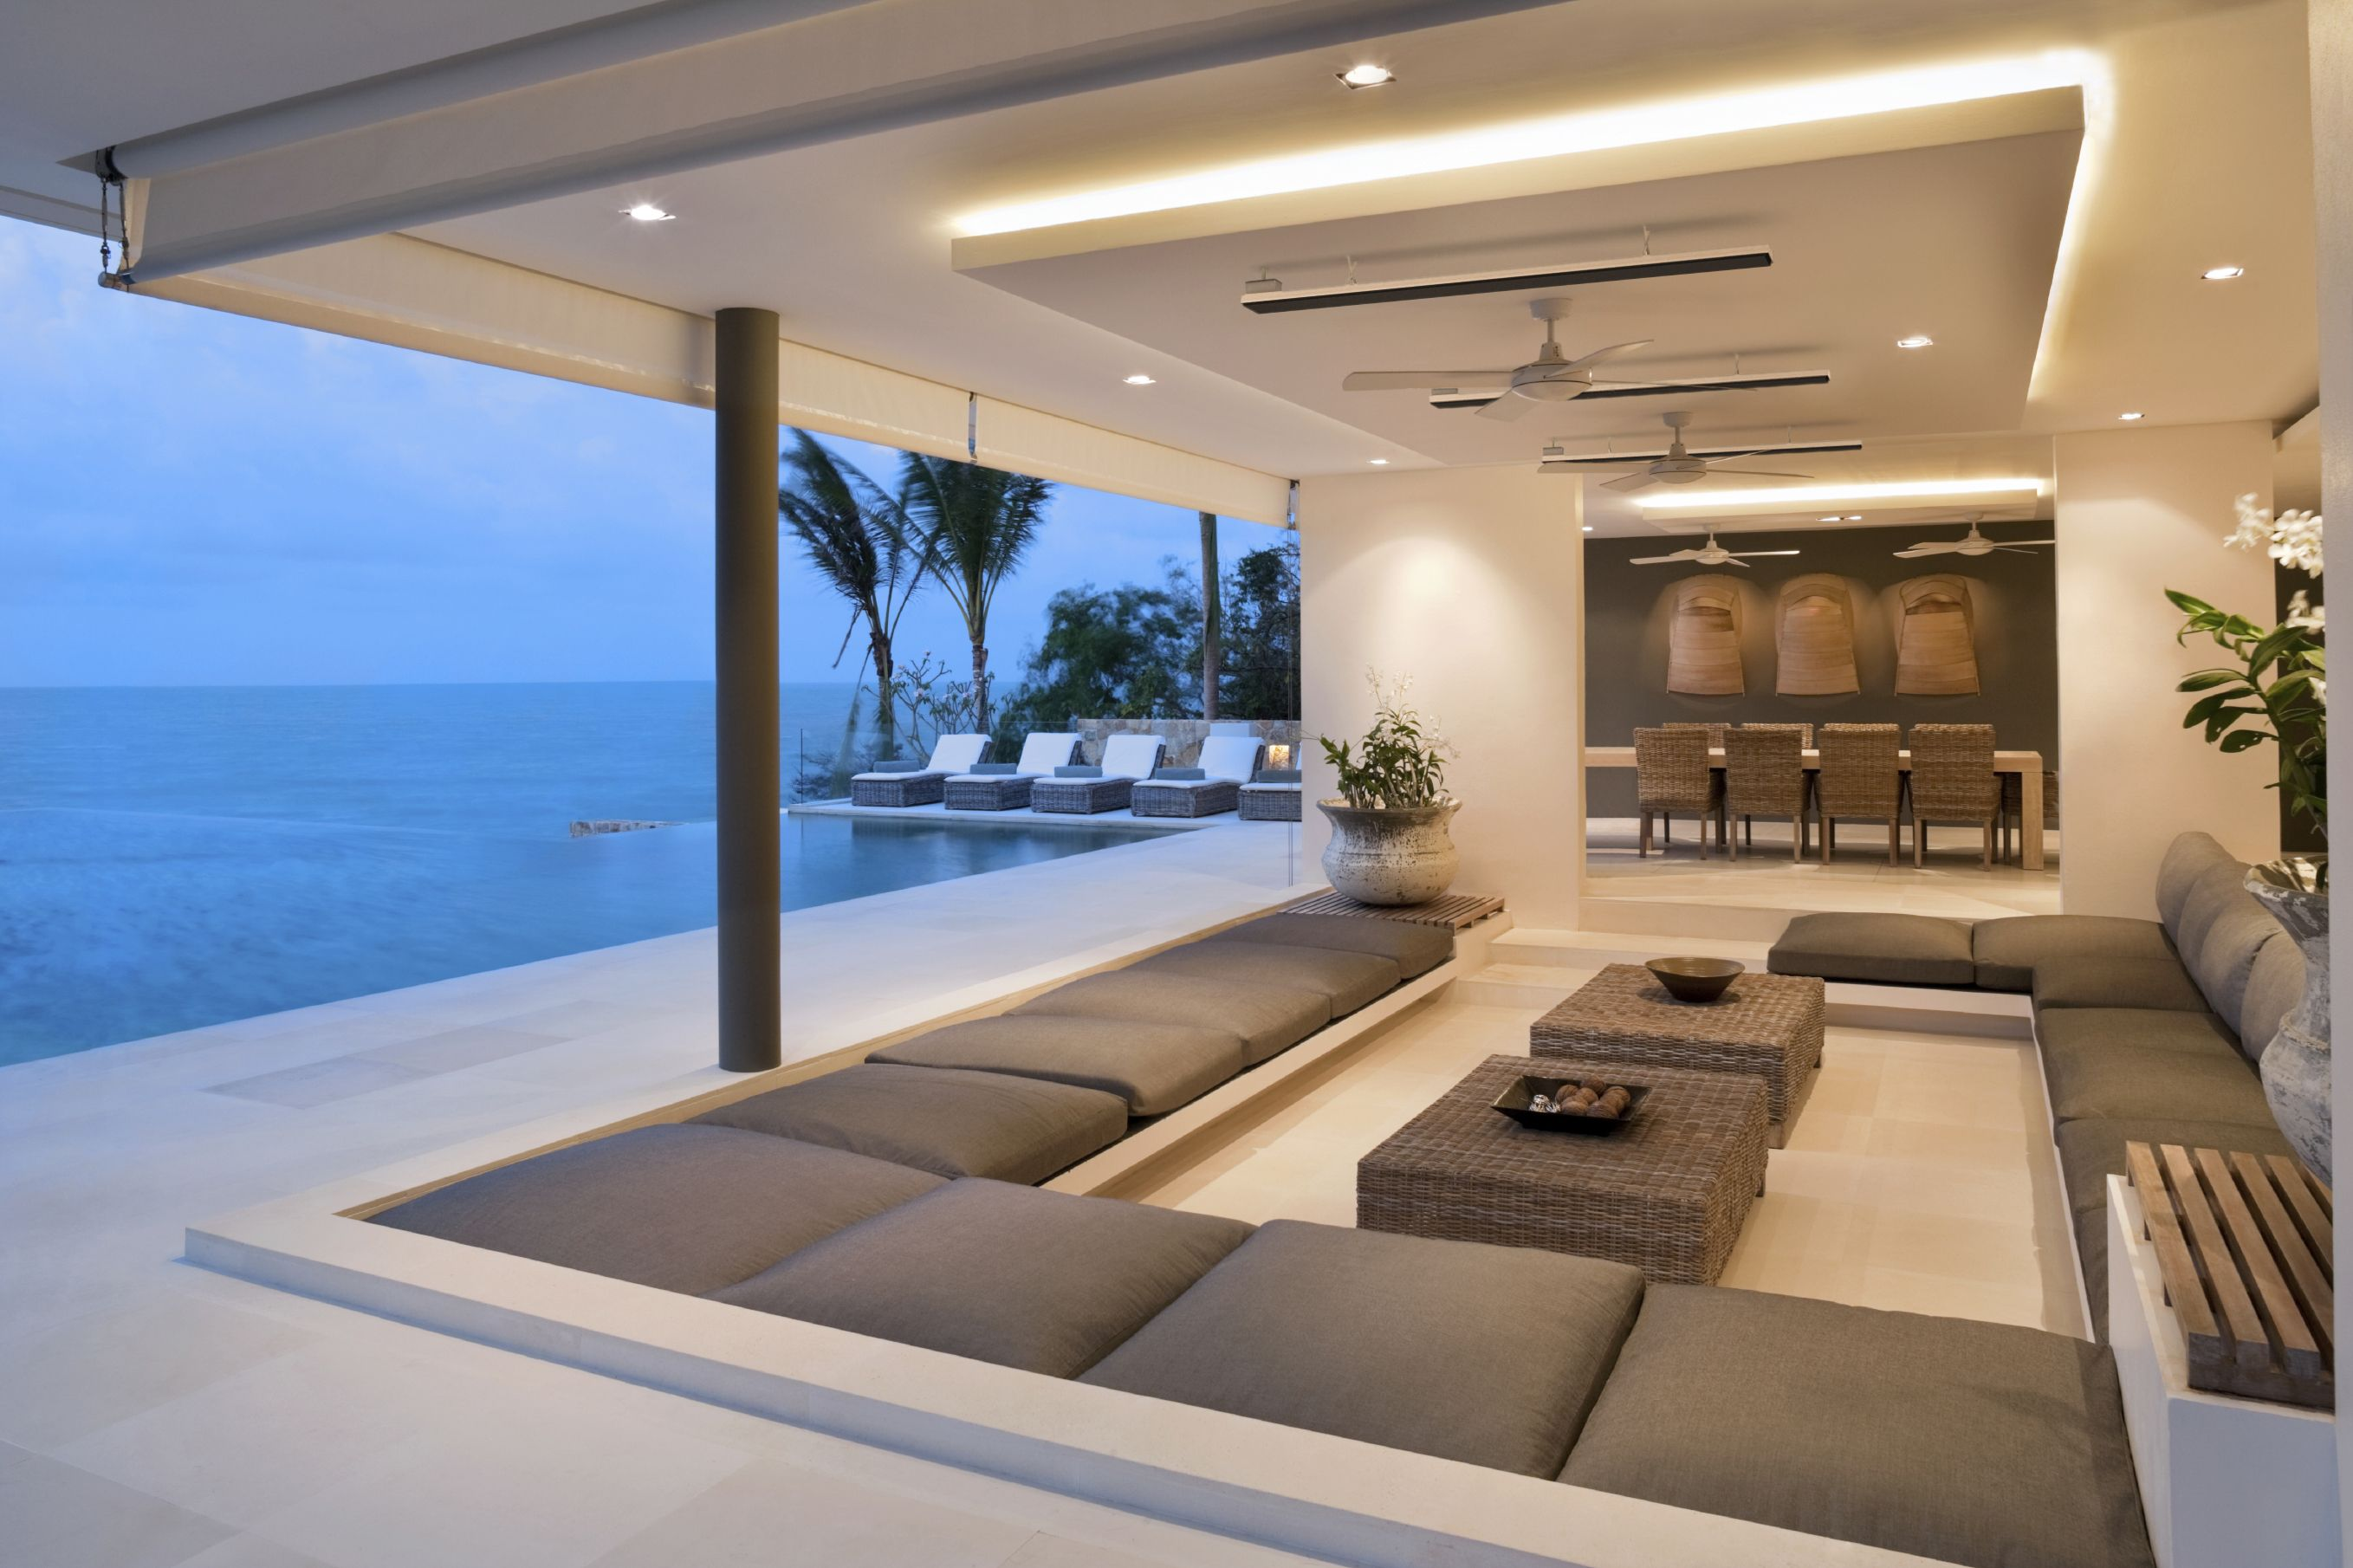 Outdoor Heater Patio Heater Infinity Pool Outdoor